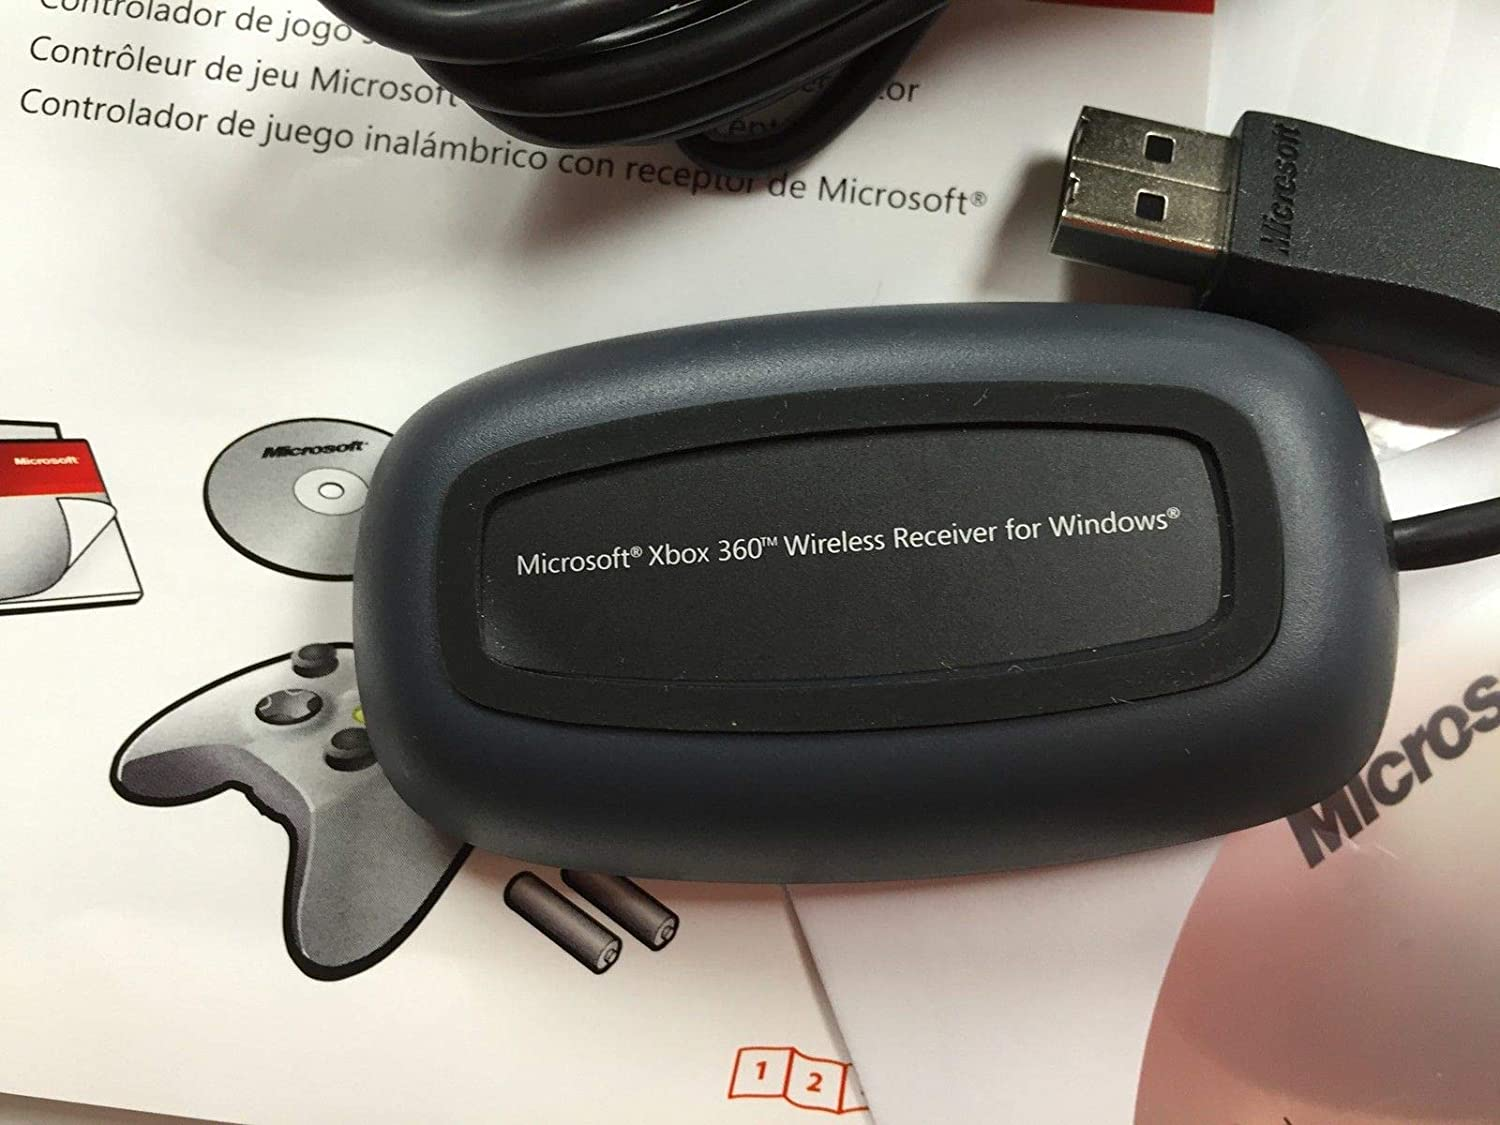 Microsoft Xbox 360 Wireless Receiver for Windows on fuse box art, fuse world, fuse demo review,